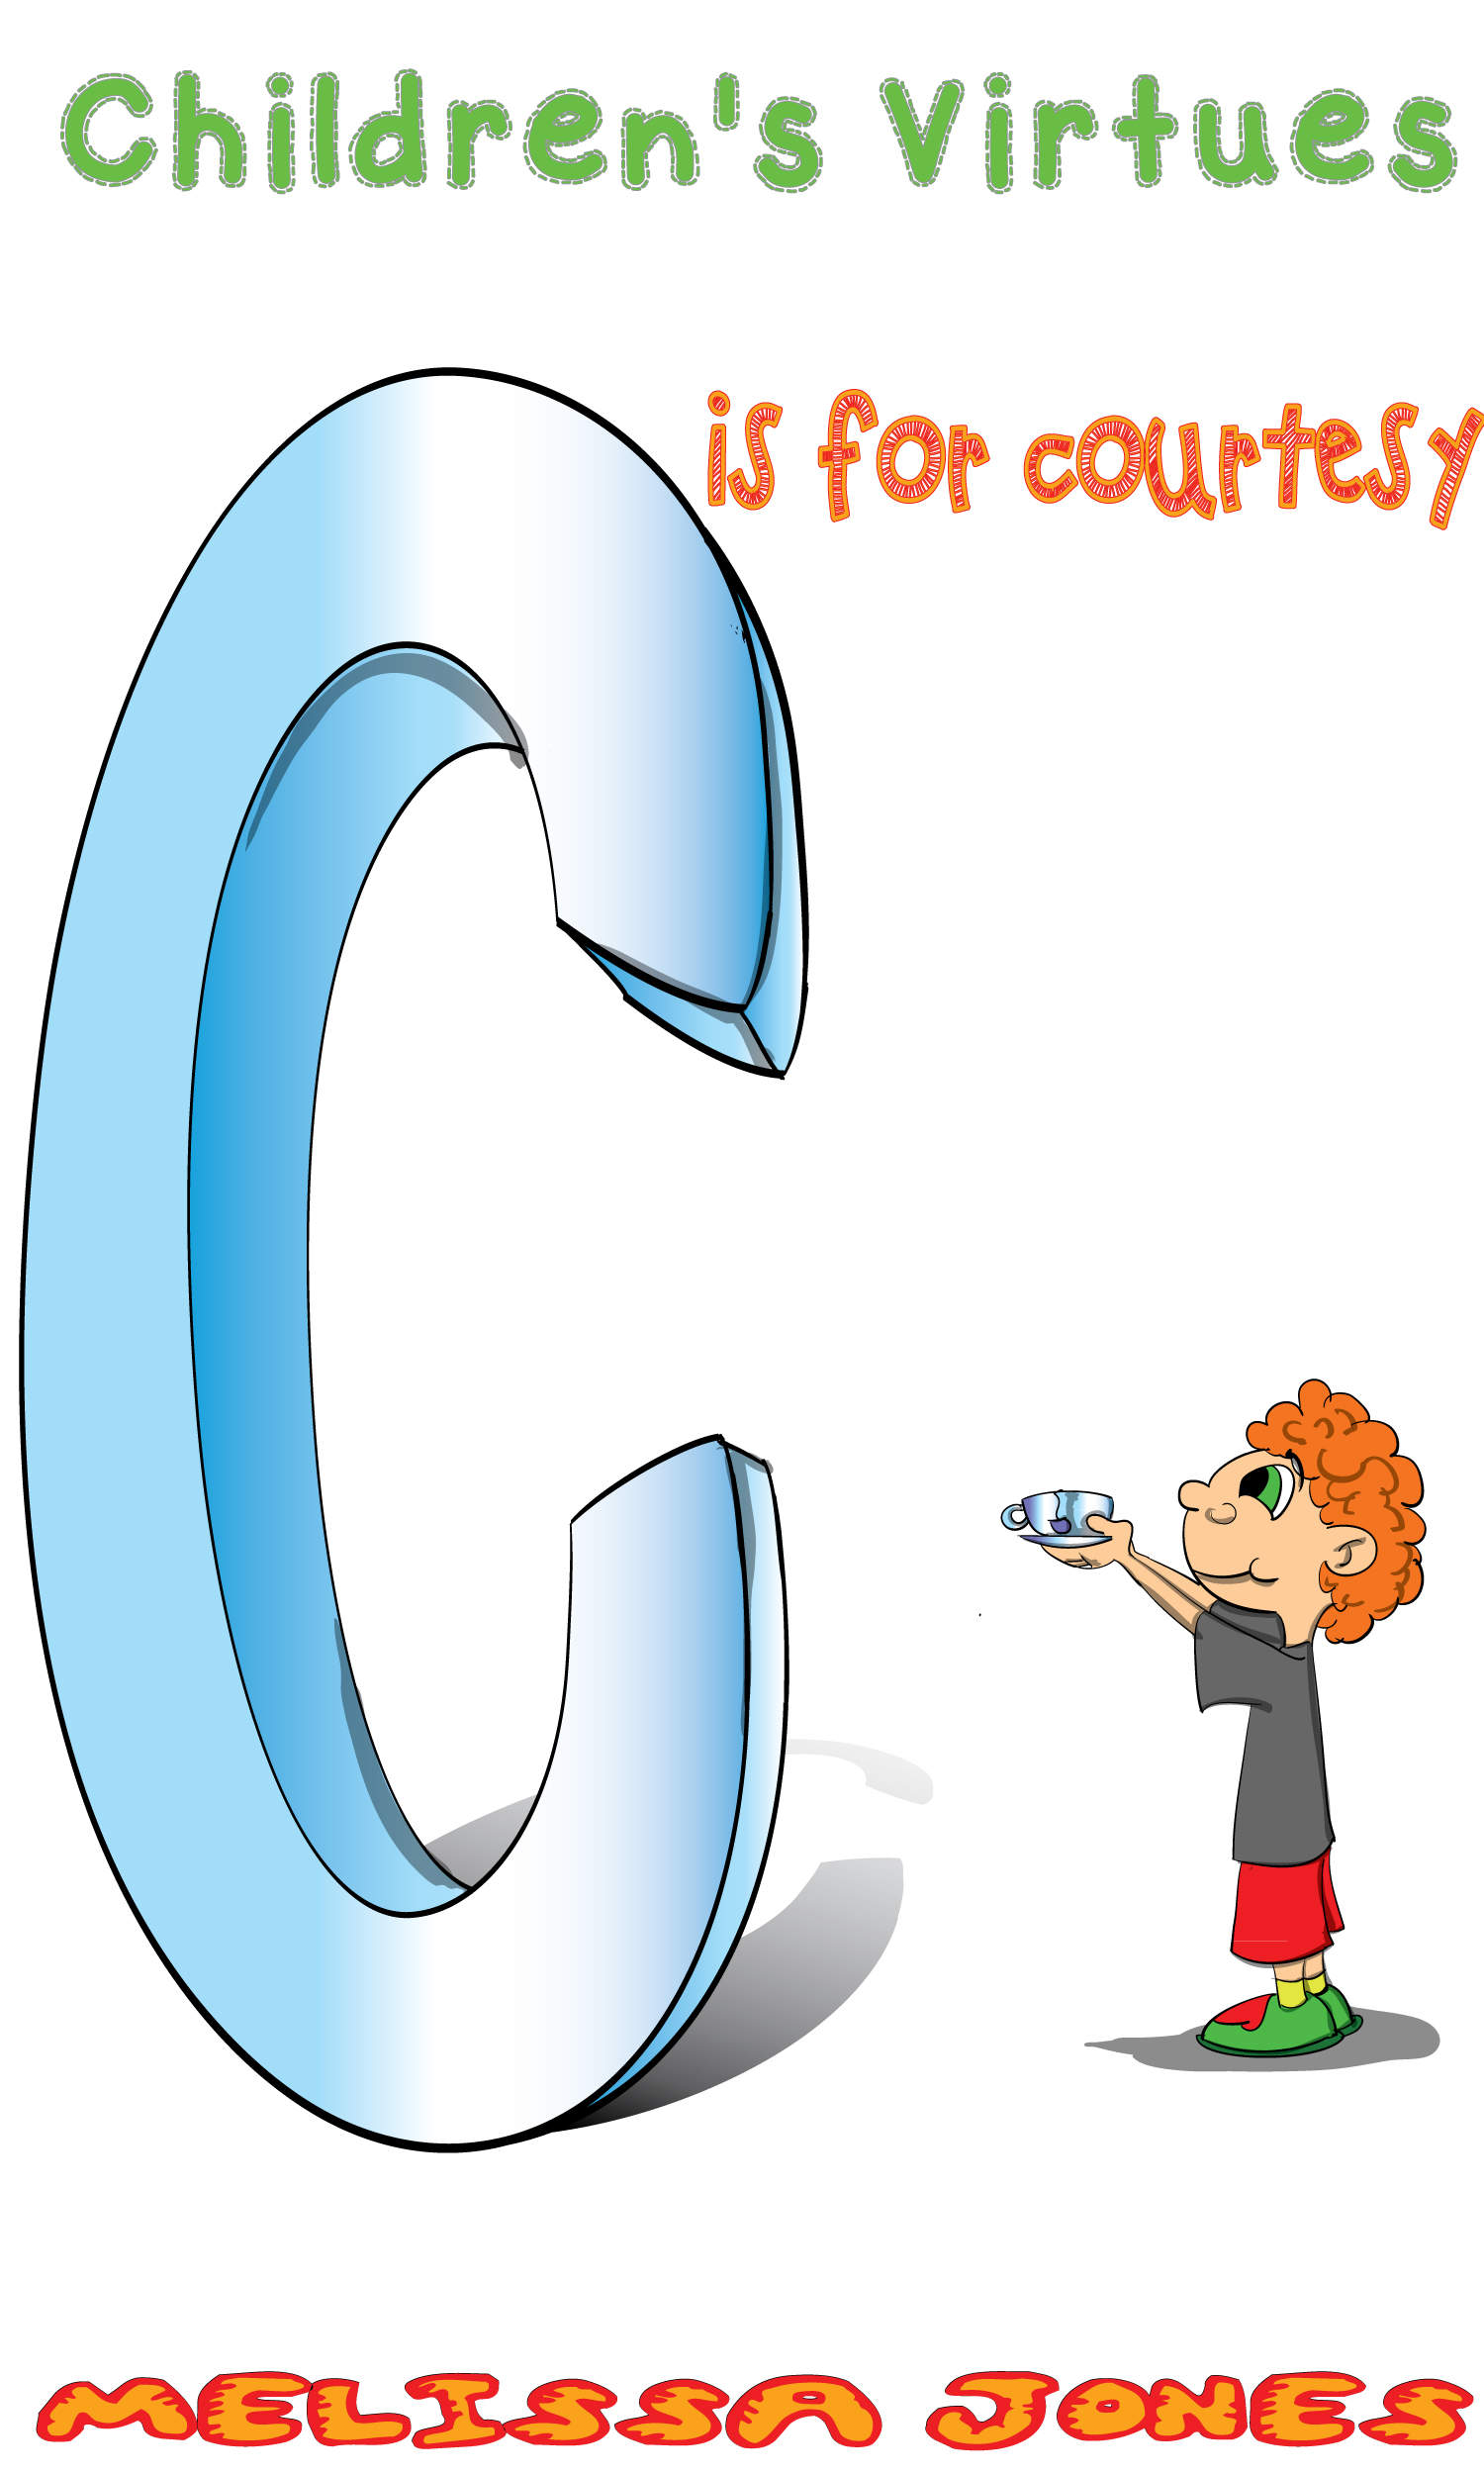 C is for Courtesy